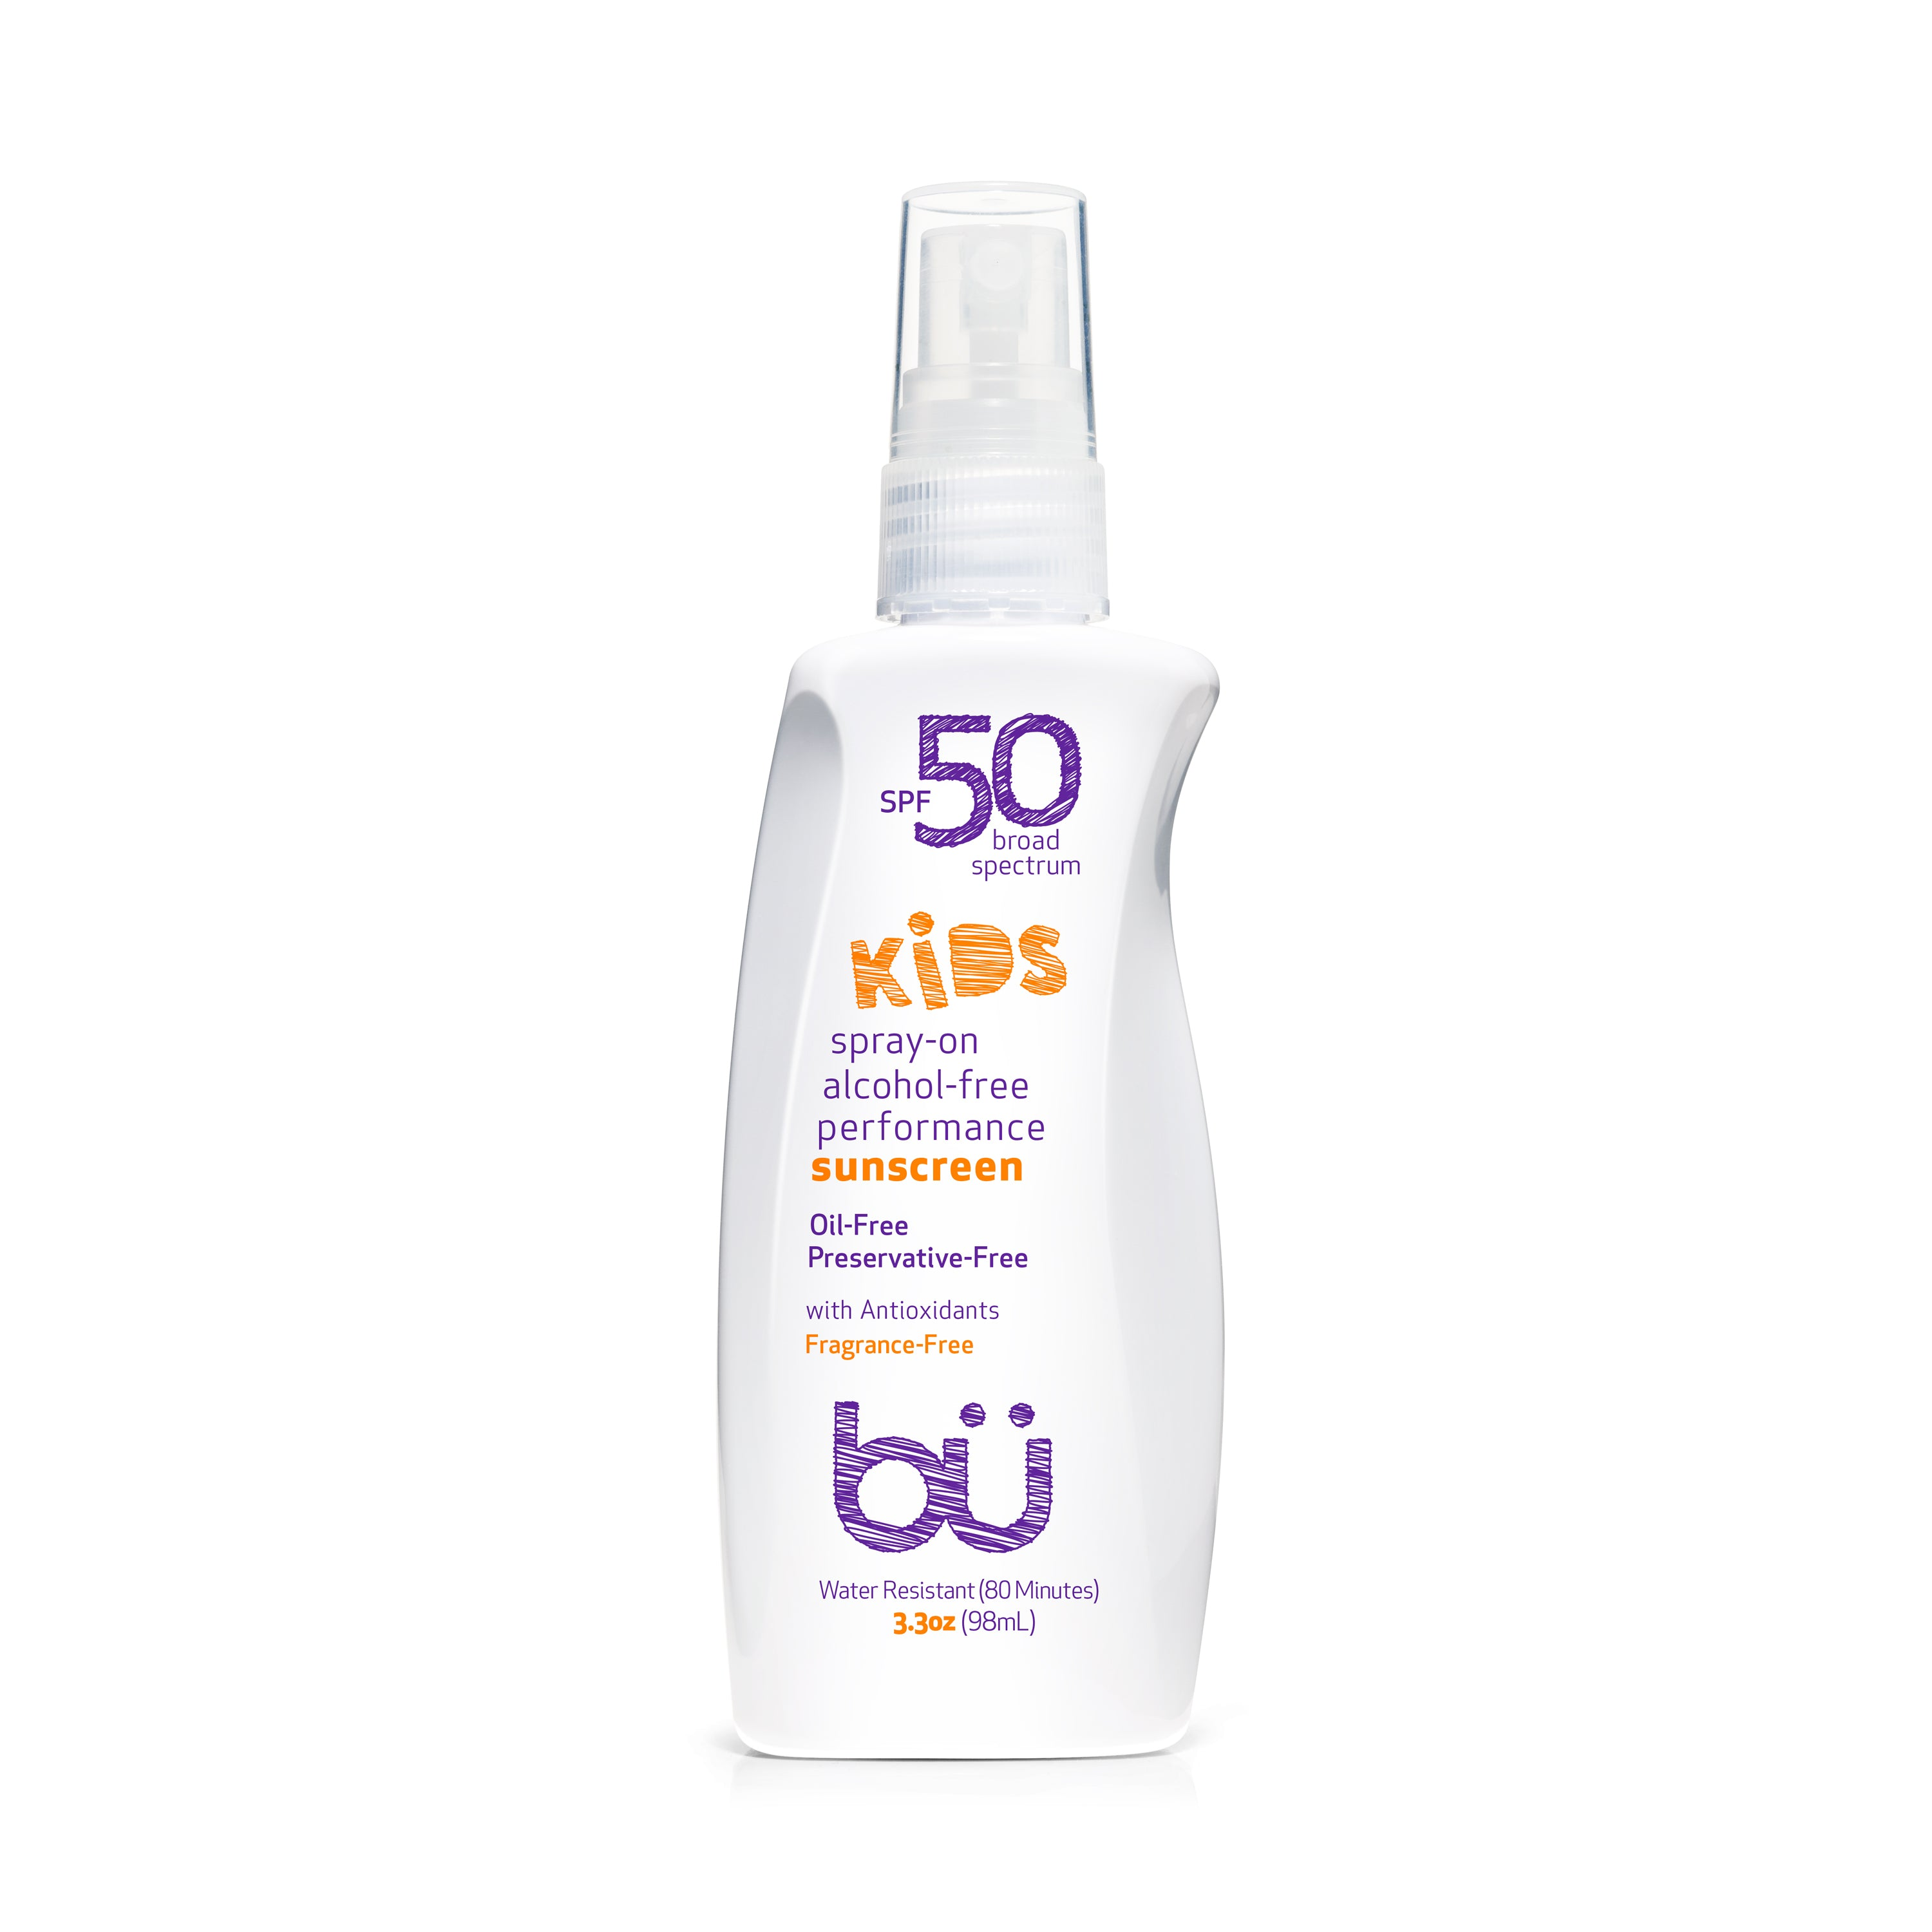 Bu SPF 50 KIDS Fragrance Free Sunscreen Spray 3.3oz